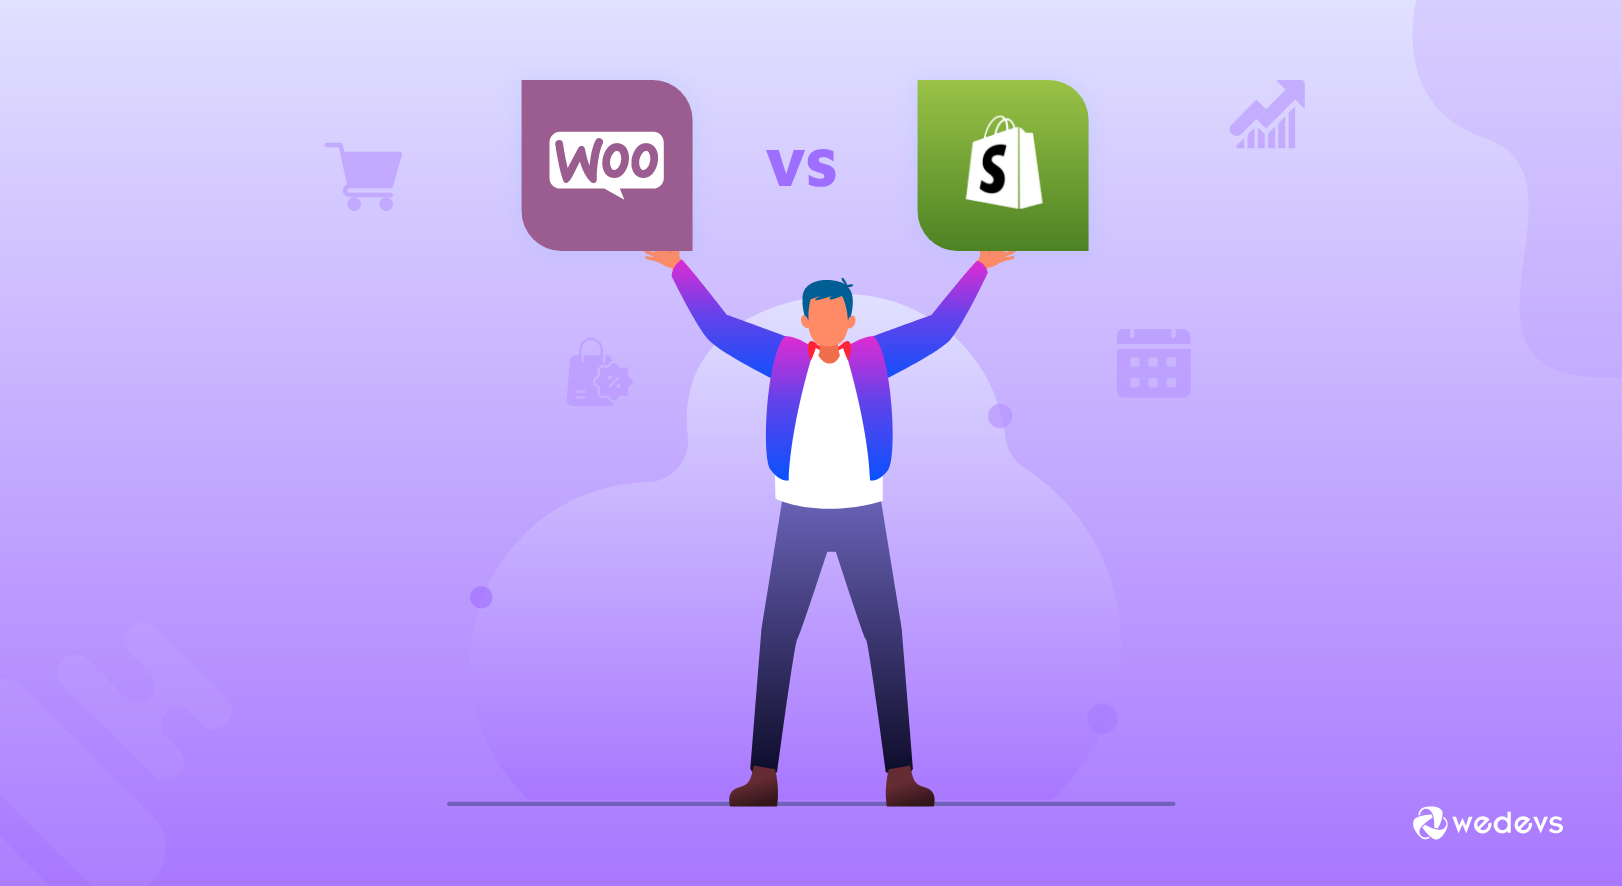 WooCommerce VS Shopify: The Real Comparison That Matters